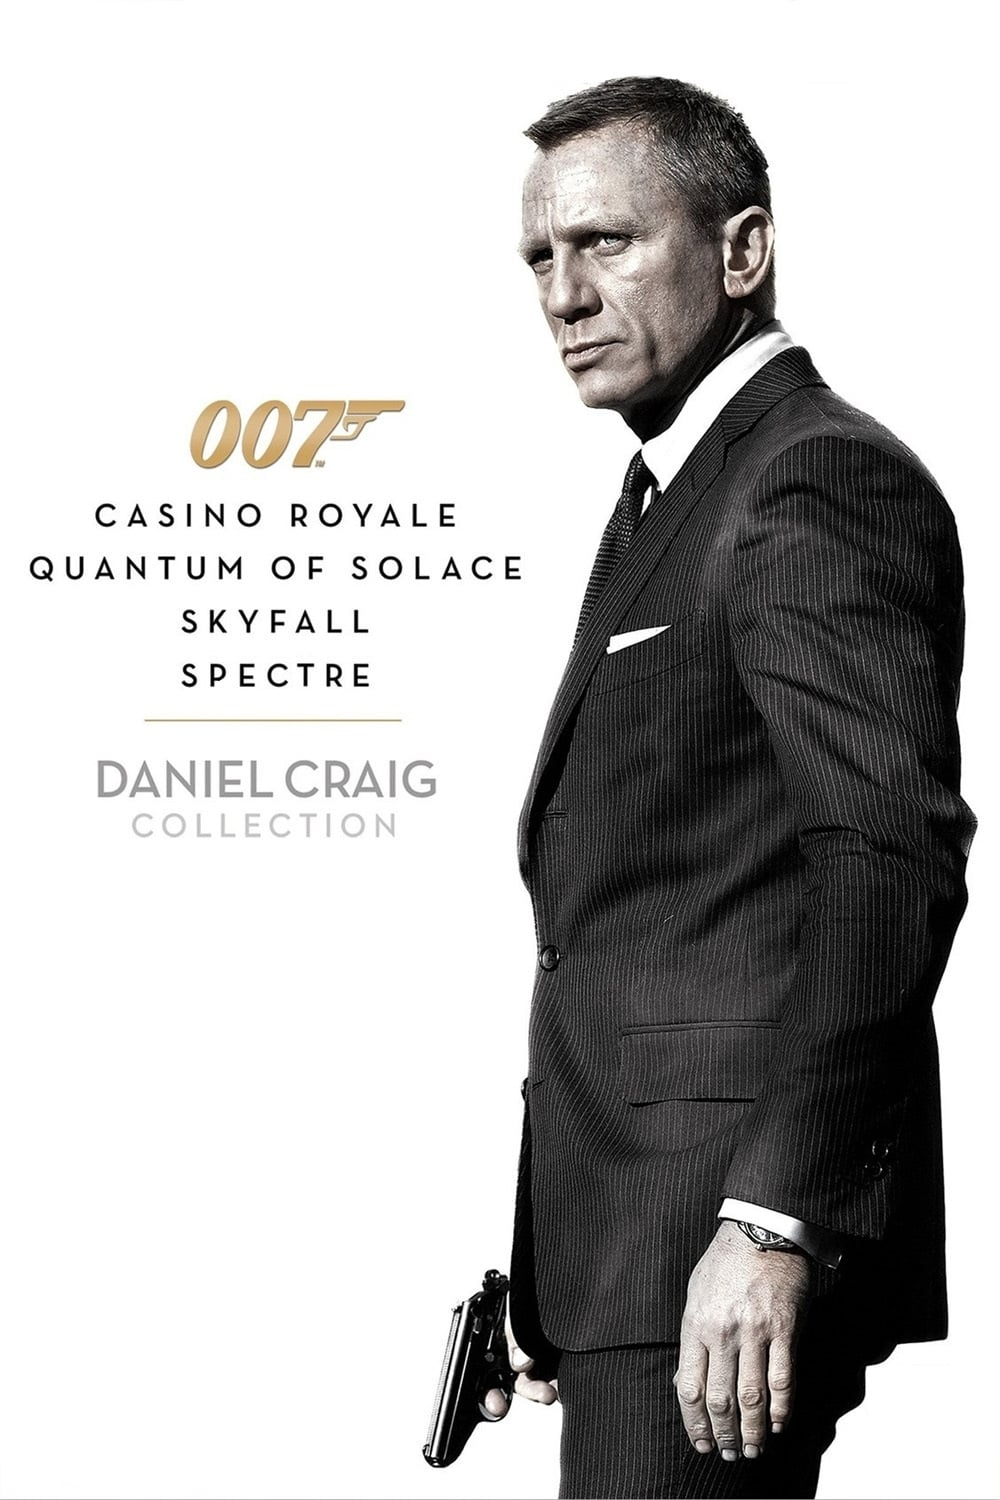 James Bond Daniel Craig Collection 2006-2015 BluRay 1080p 720p 480p [Hindi DD 5.1 + English DD 5.1] | G-Drive